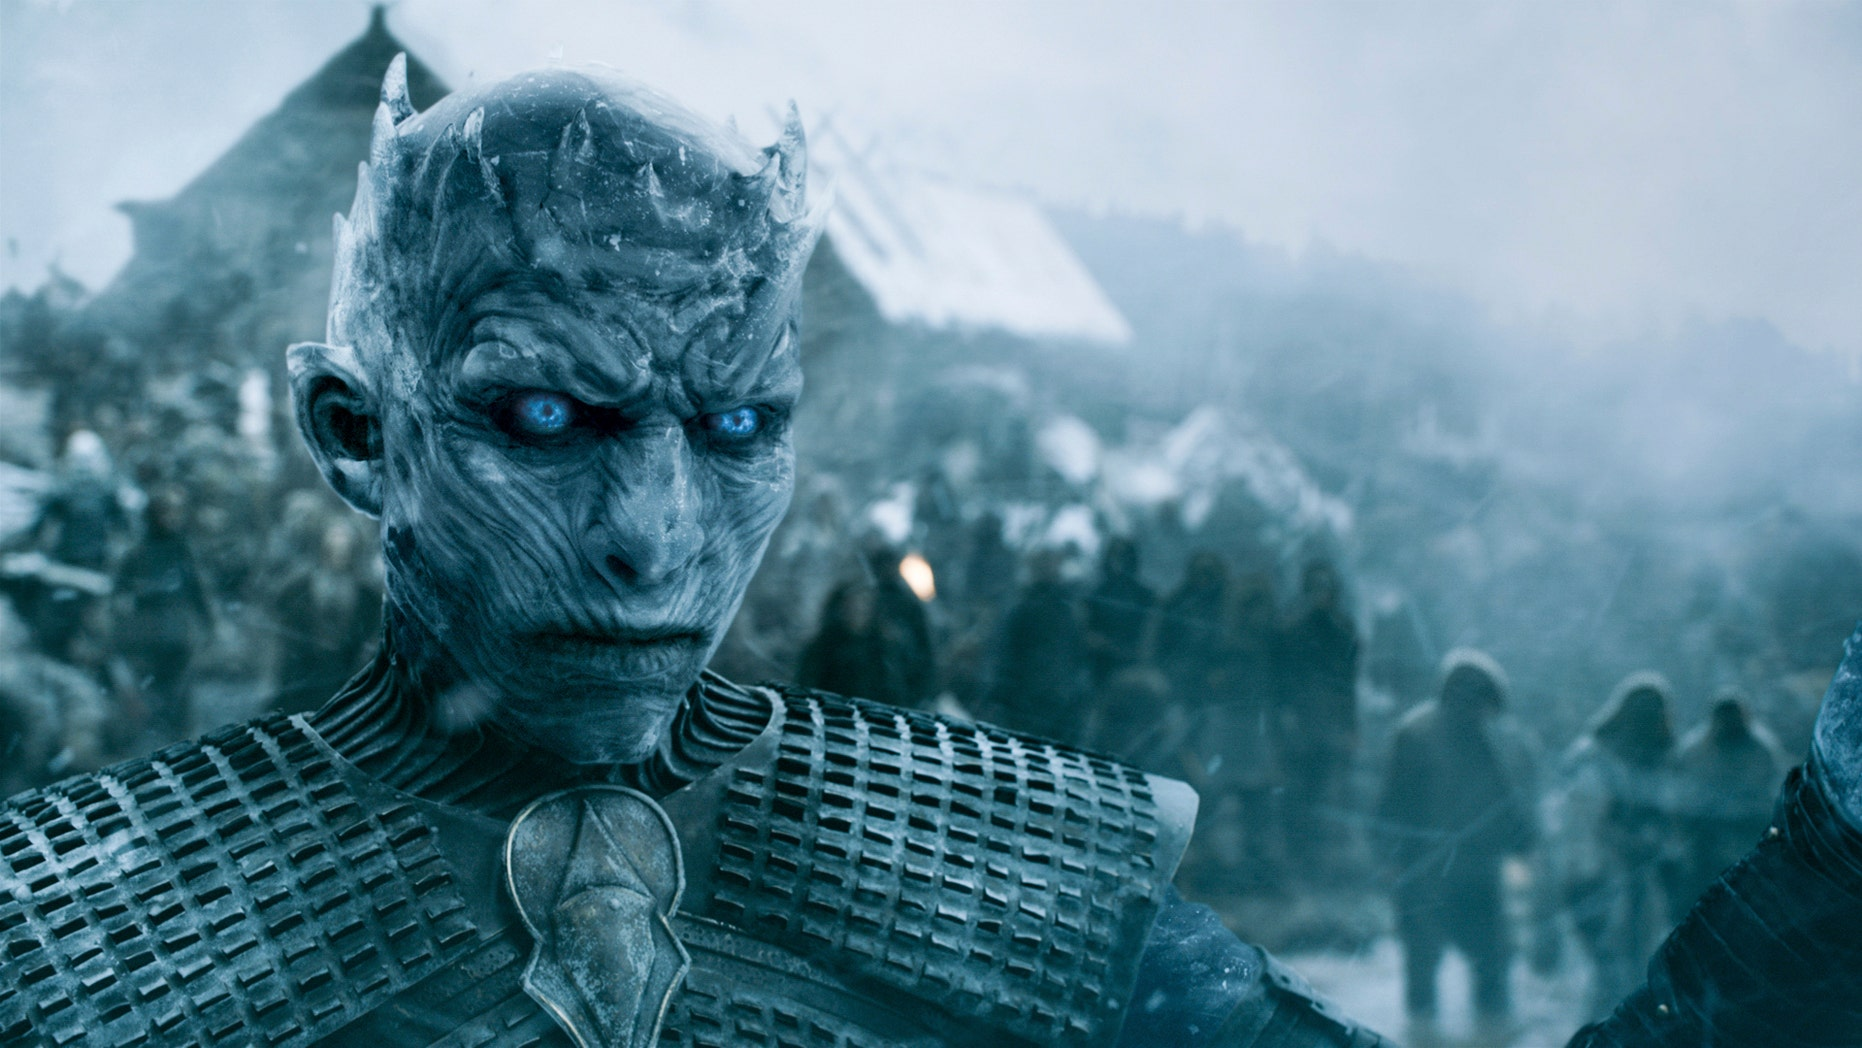 This image released by HBO shows a scene from